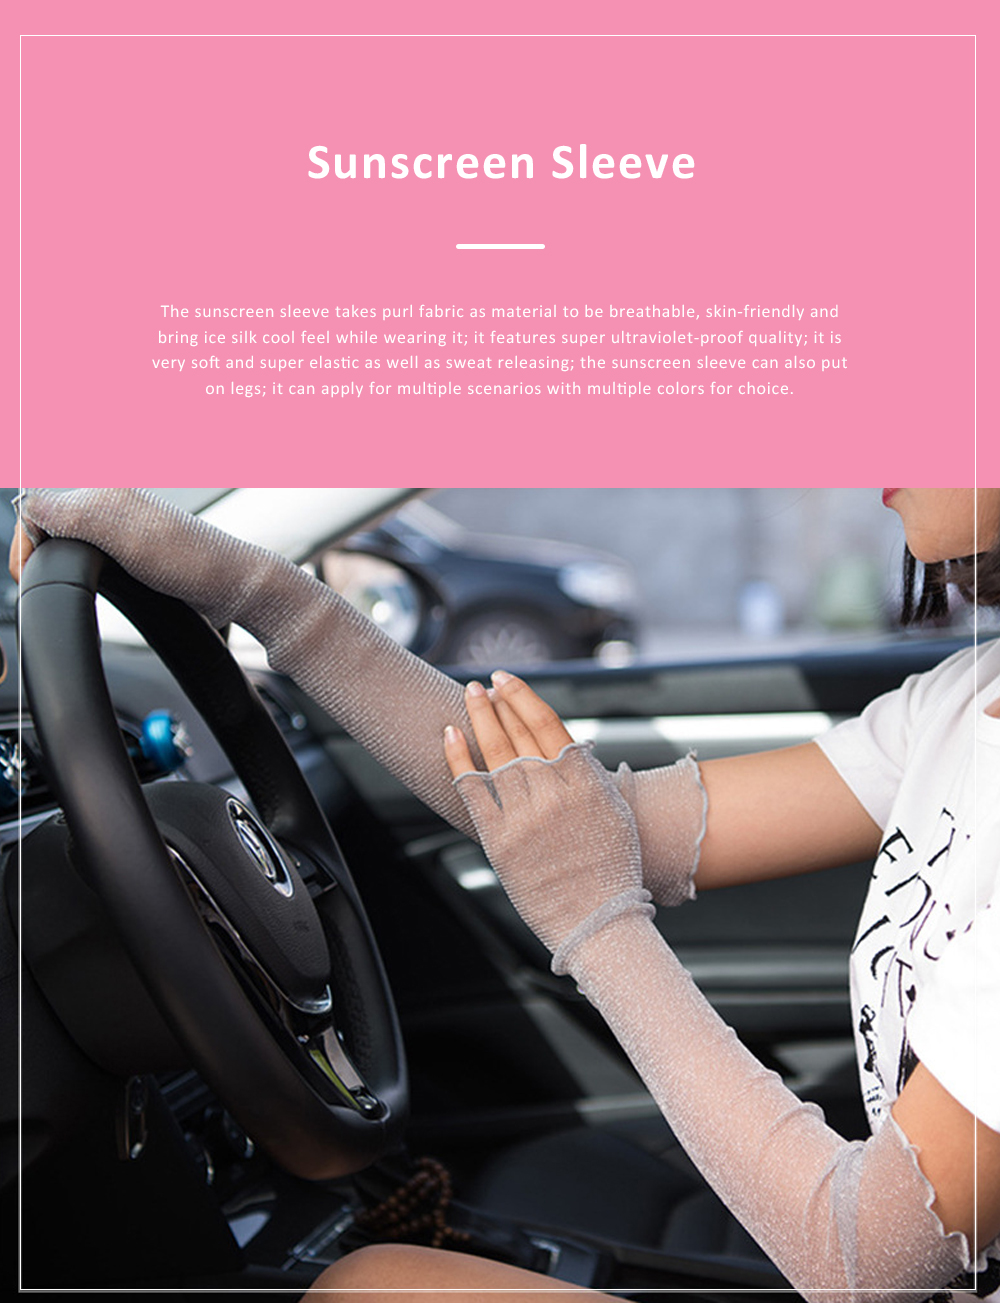 Super Elastic Sun Block Grenadine Sleeve for Women Driving Hiking Outdoor Ultraviolet-proof Anti Sunscreen 0